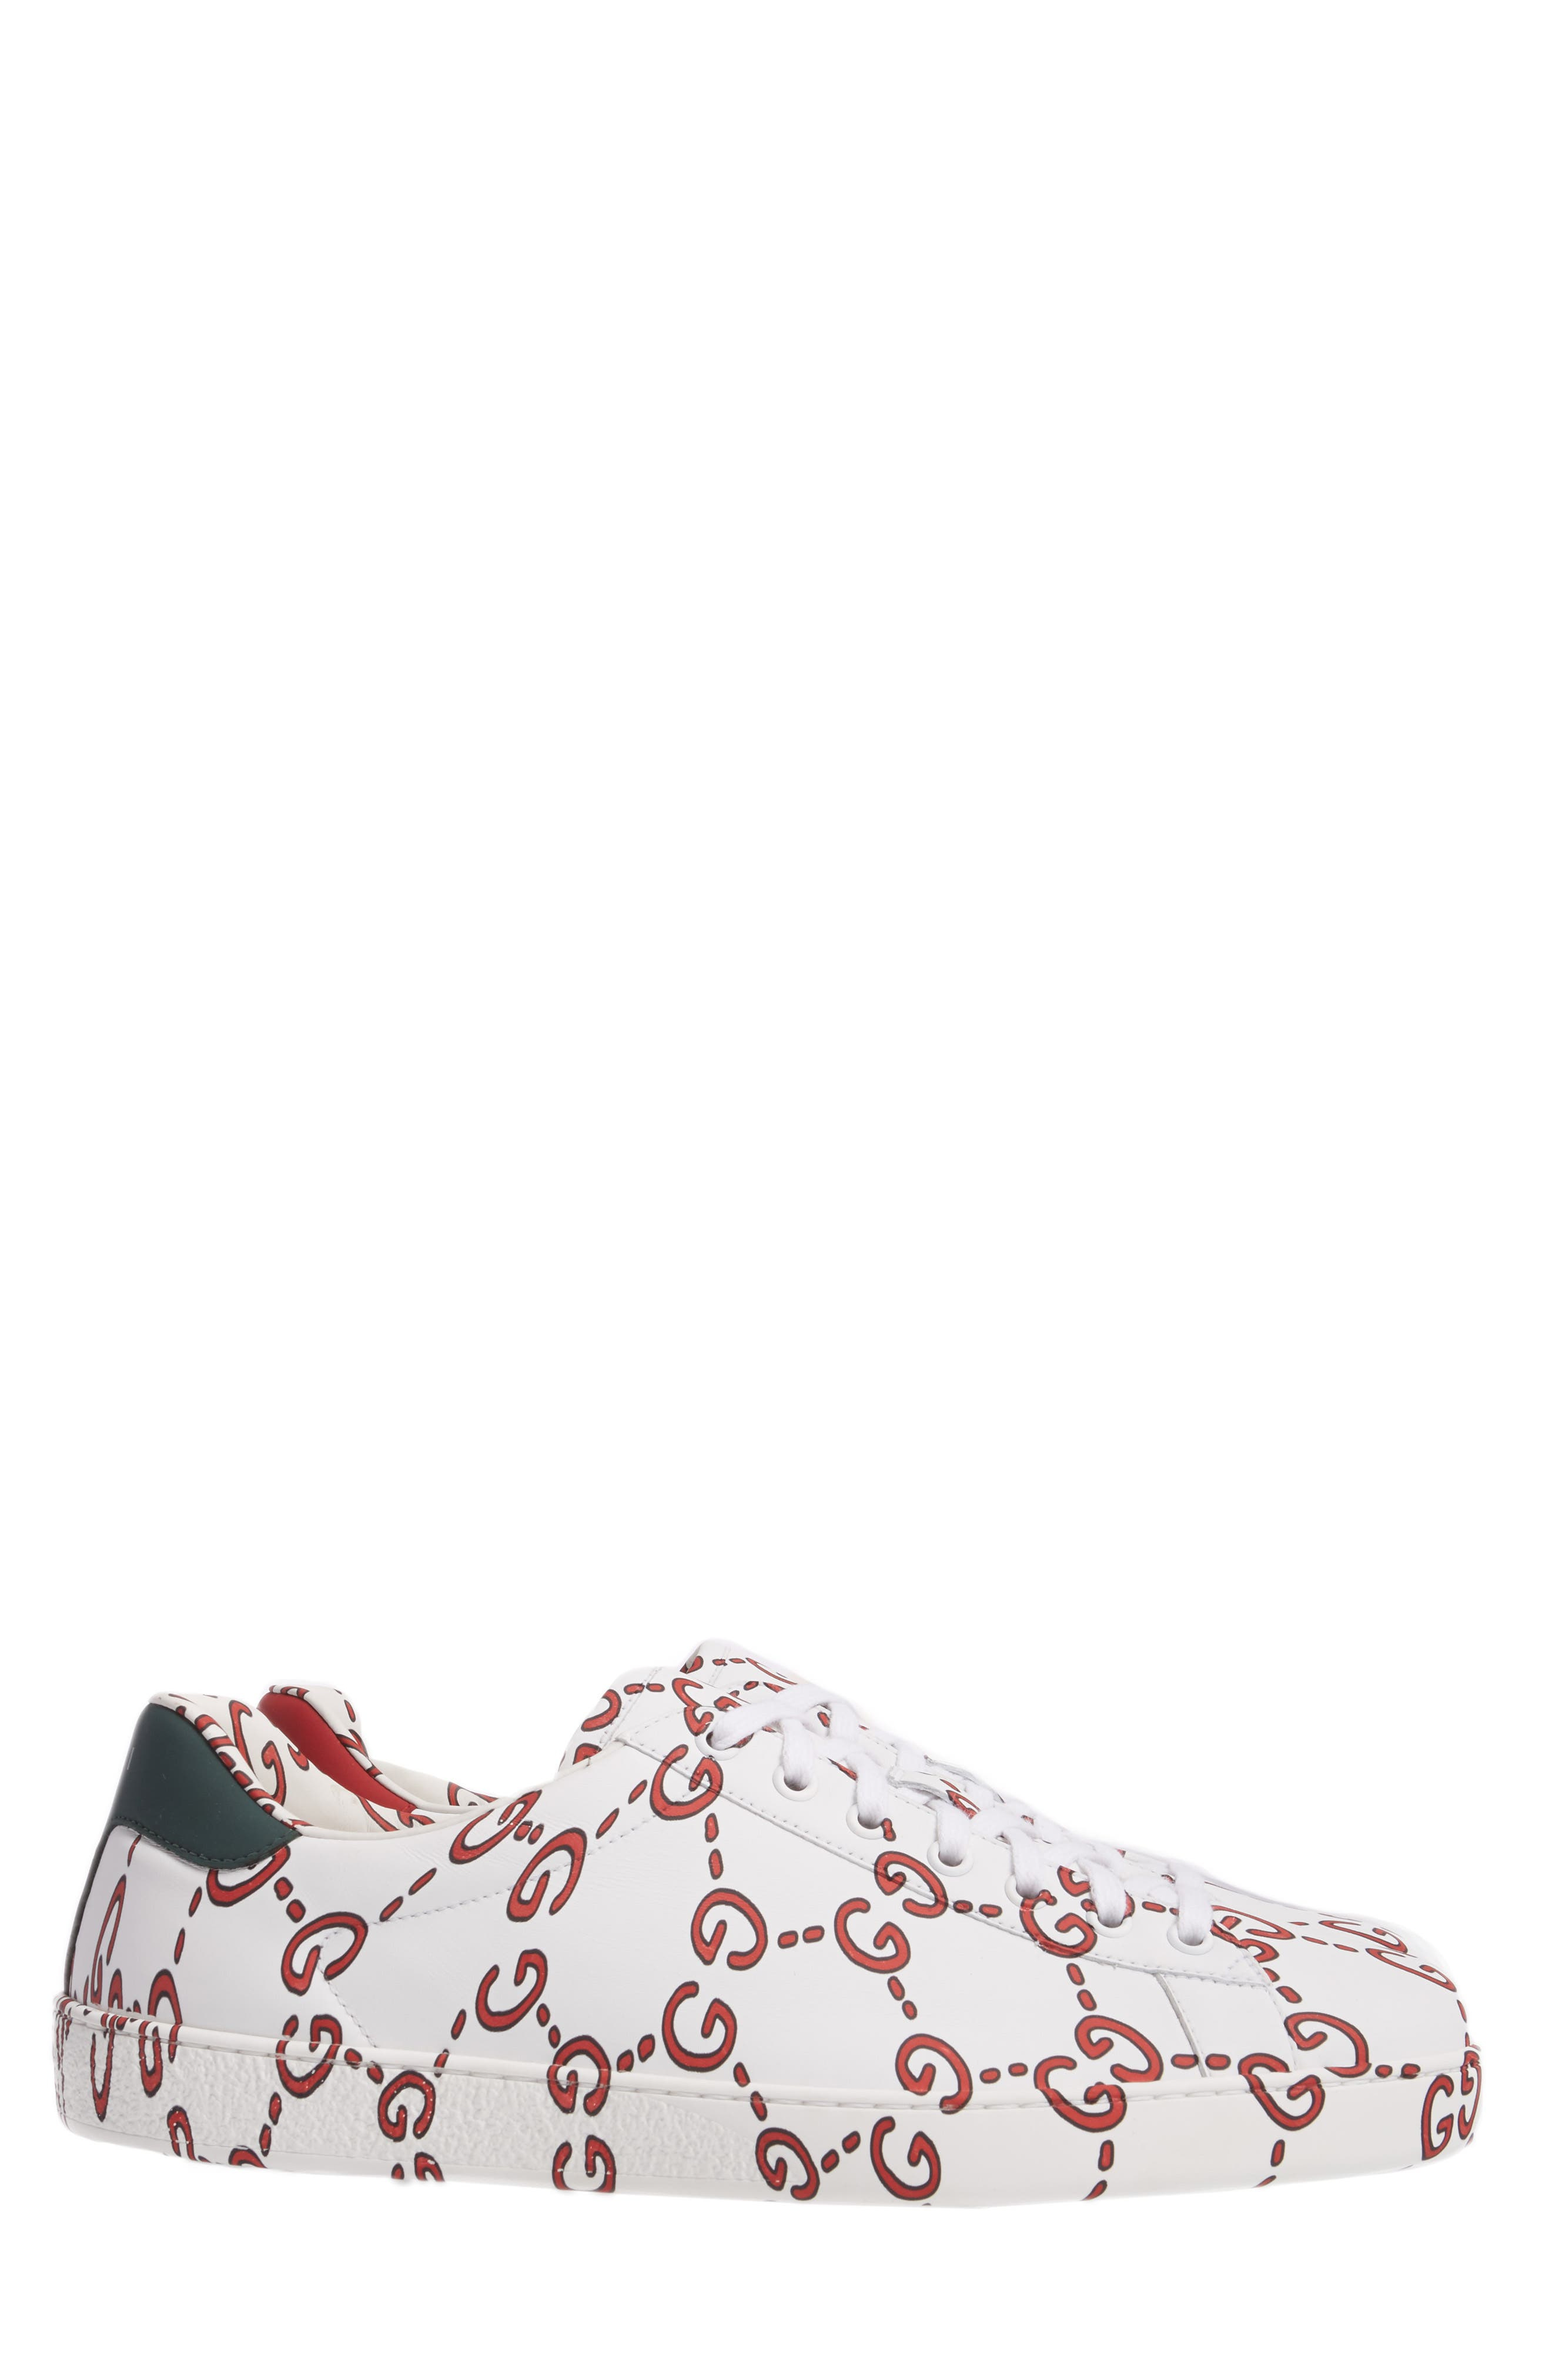 New Ace Guccighost Sneaker,                             Alternate thumbnail 3, color,                             White